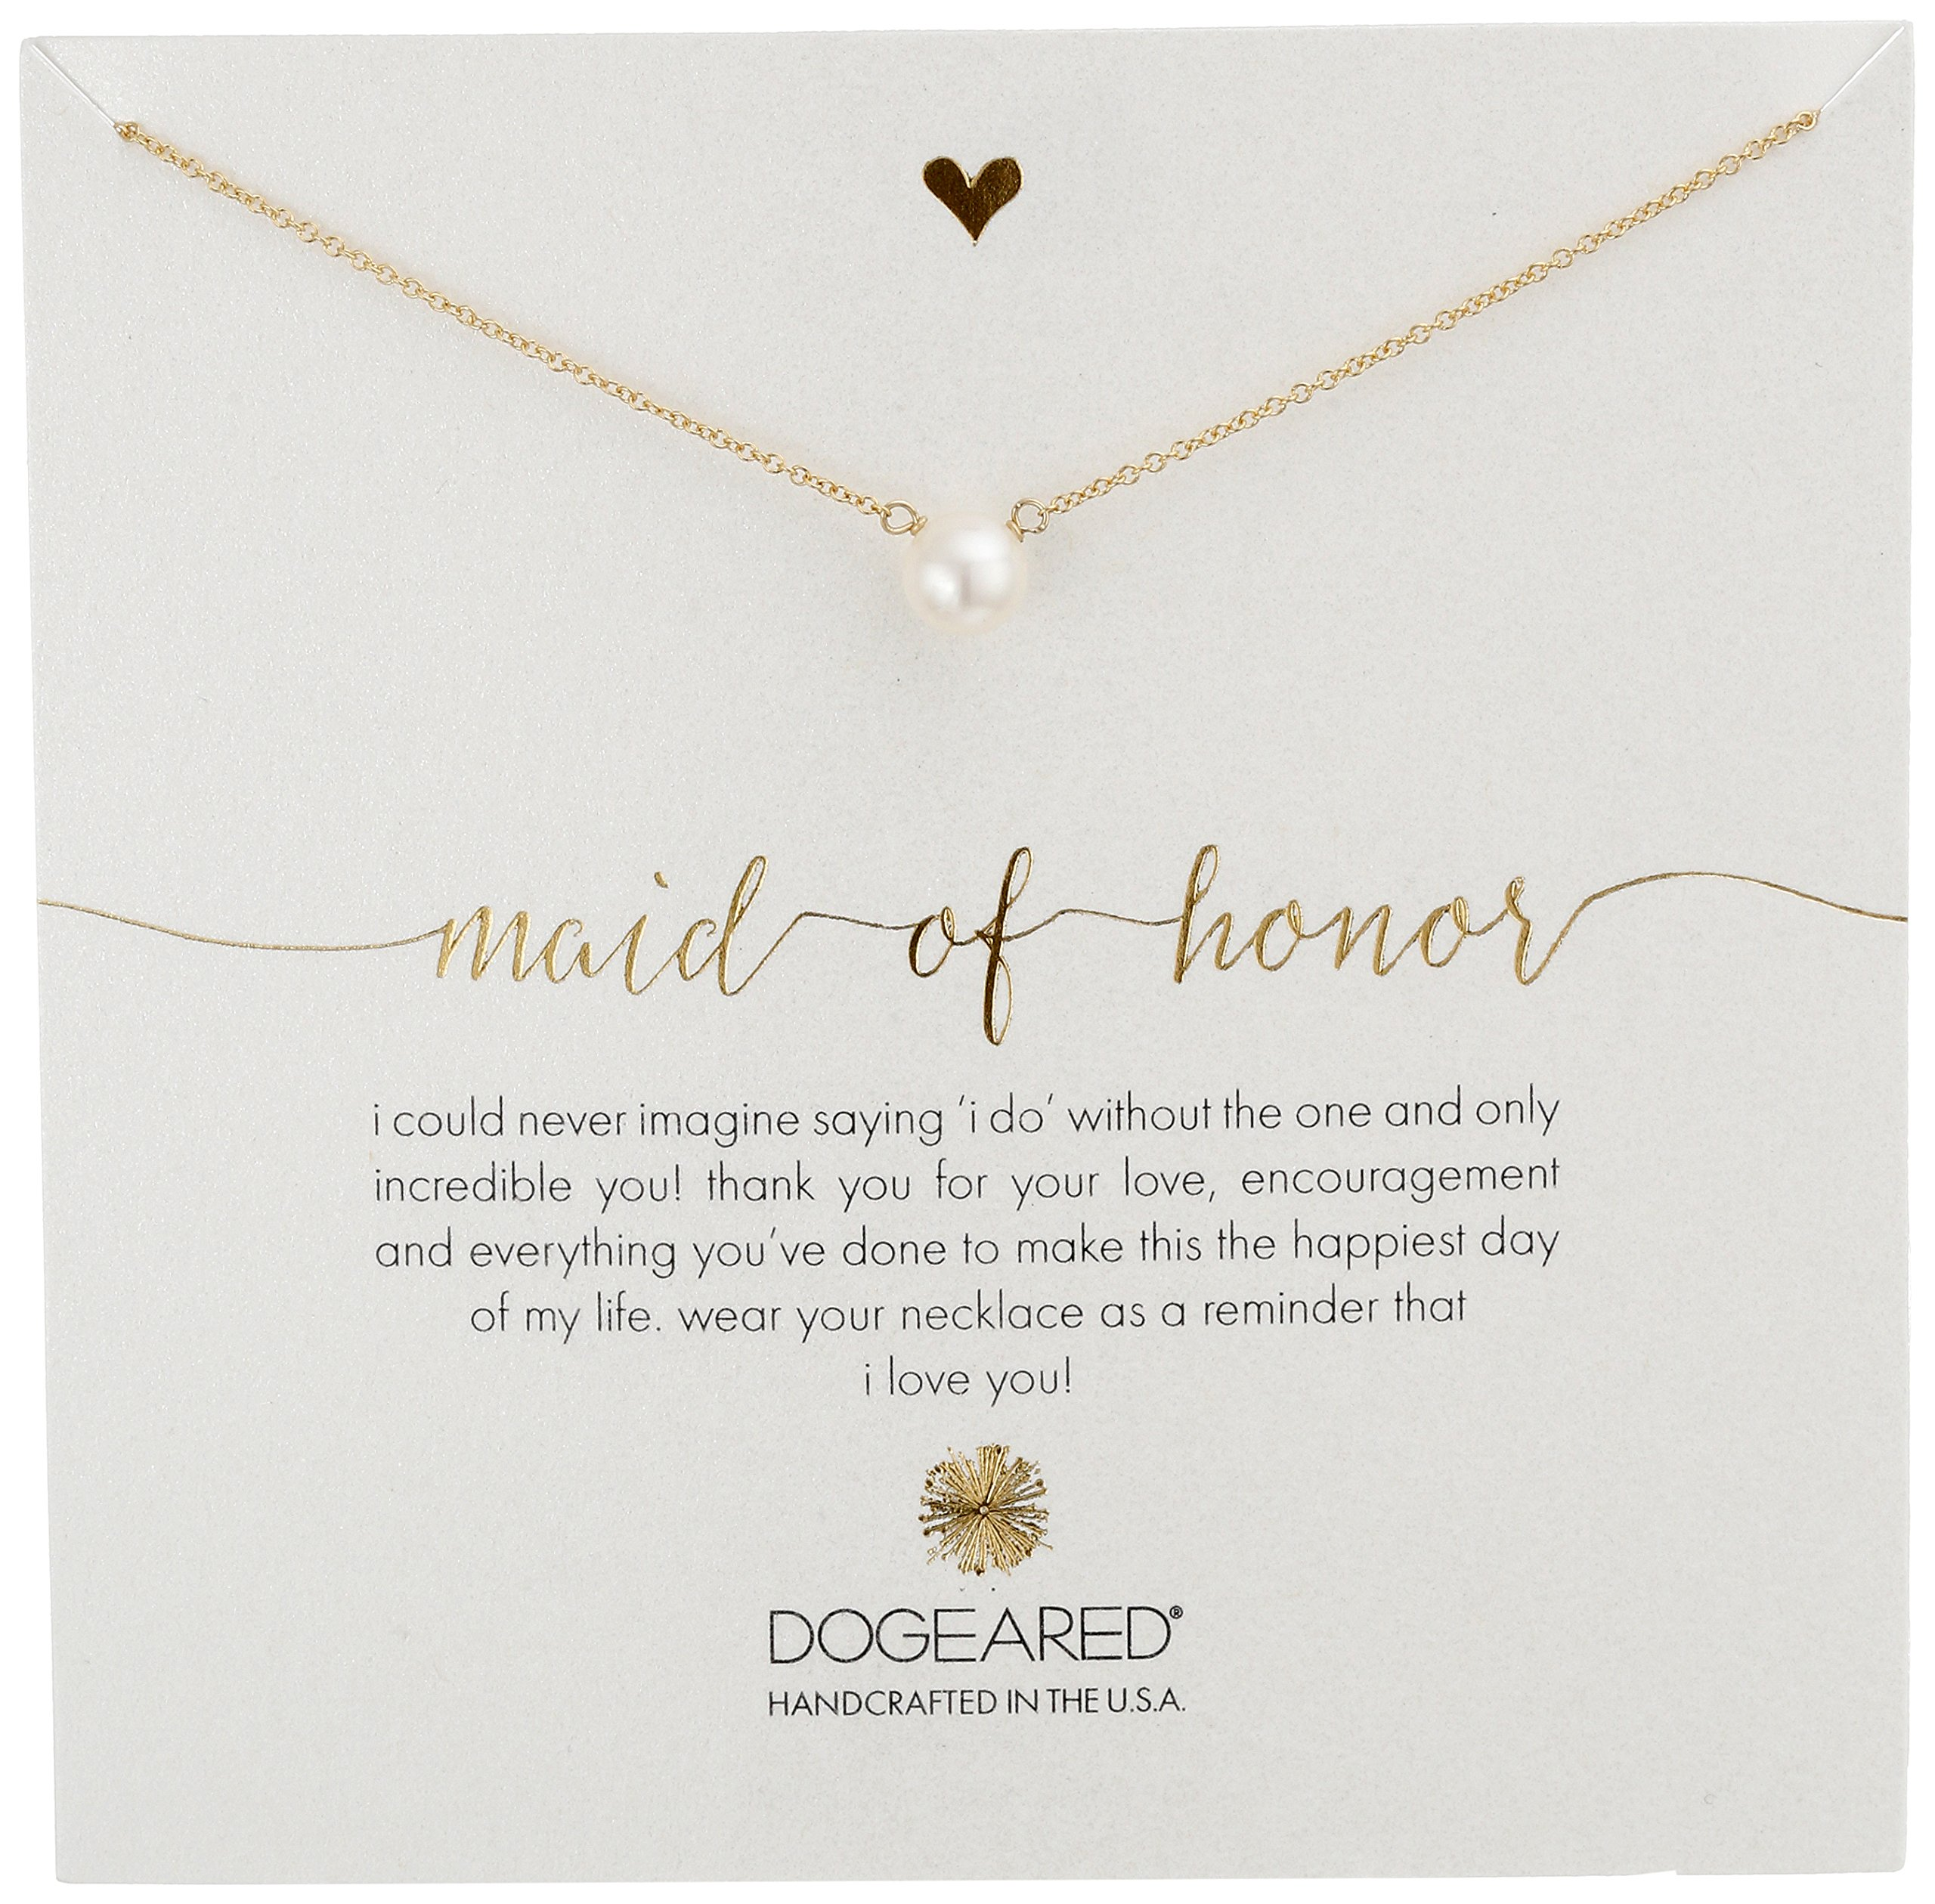 Dogeared Maid of Honor, Large White Pearl Gold Necklace, 18''